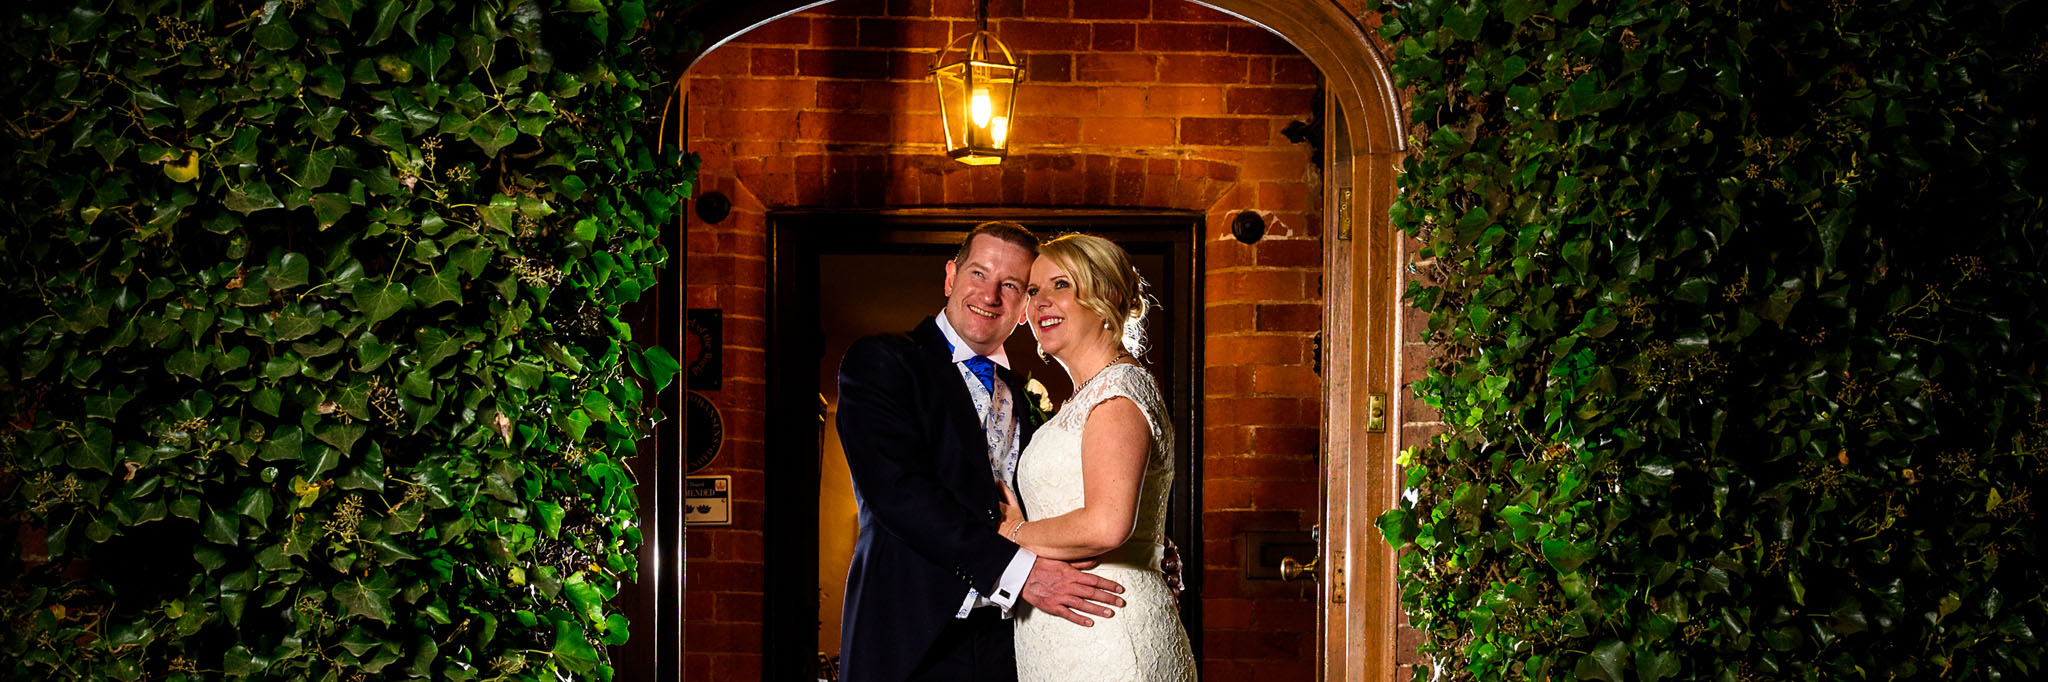 night time portrait of the bride and groom in the doorway of nailcote hall